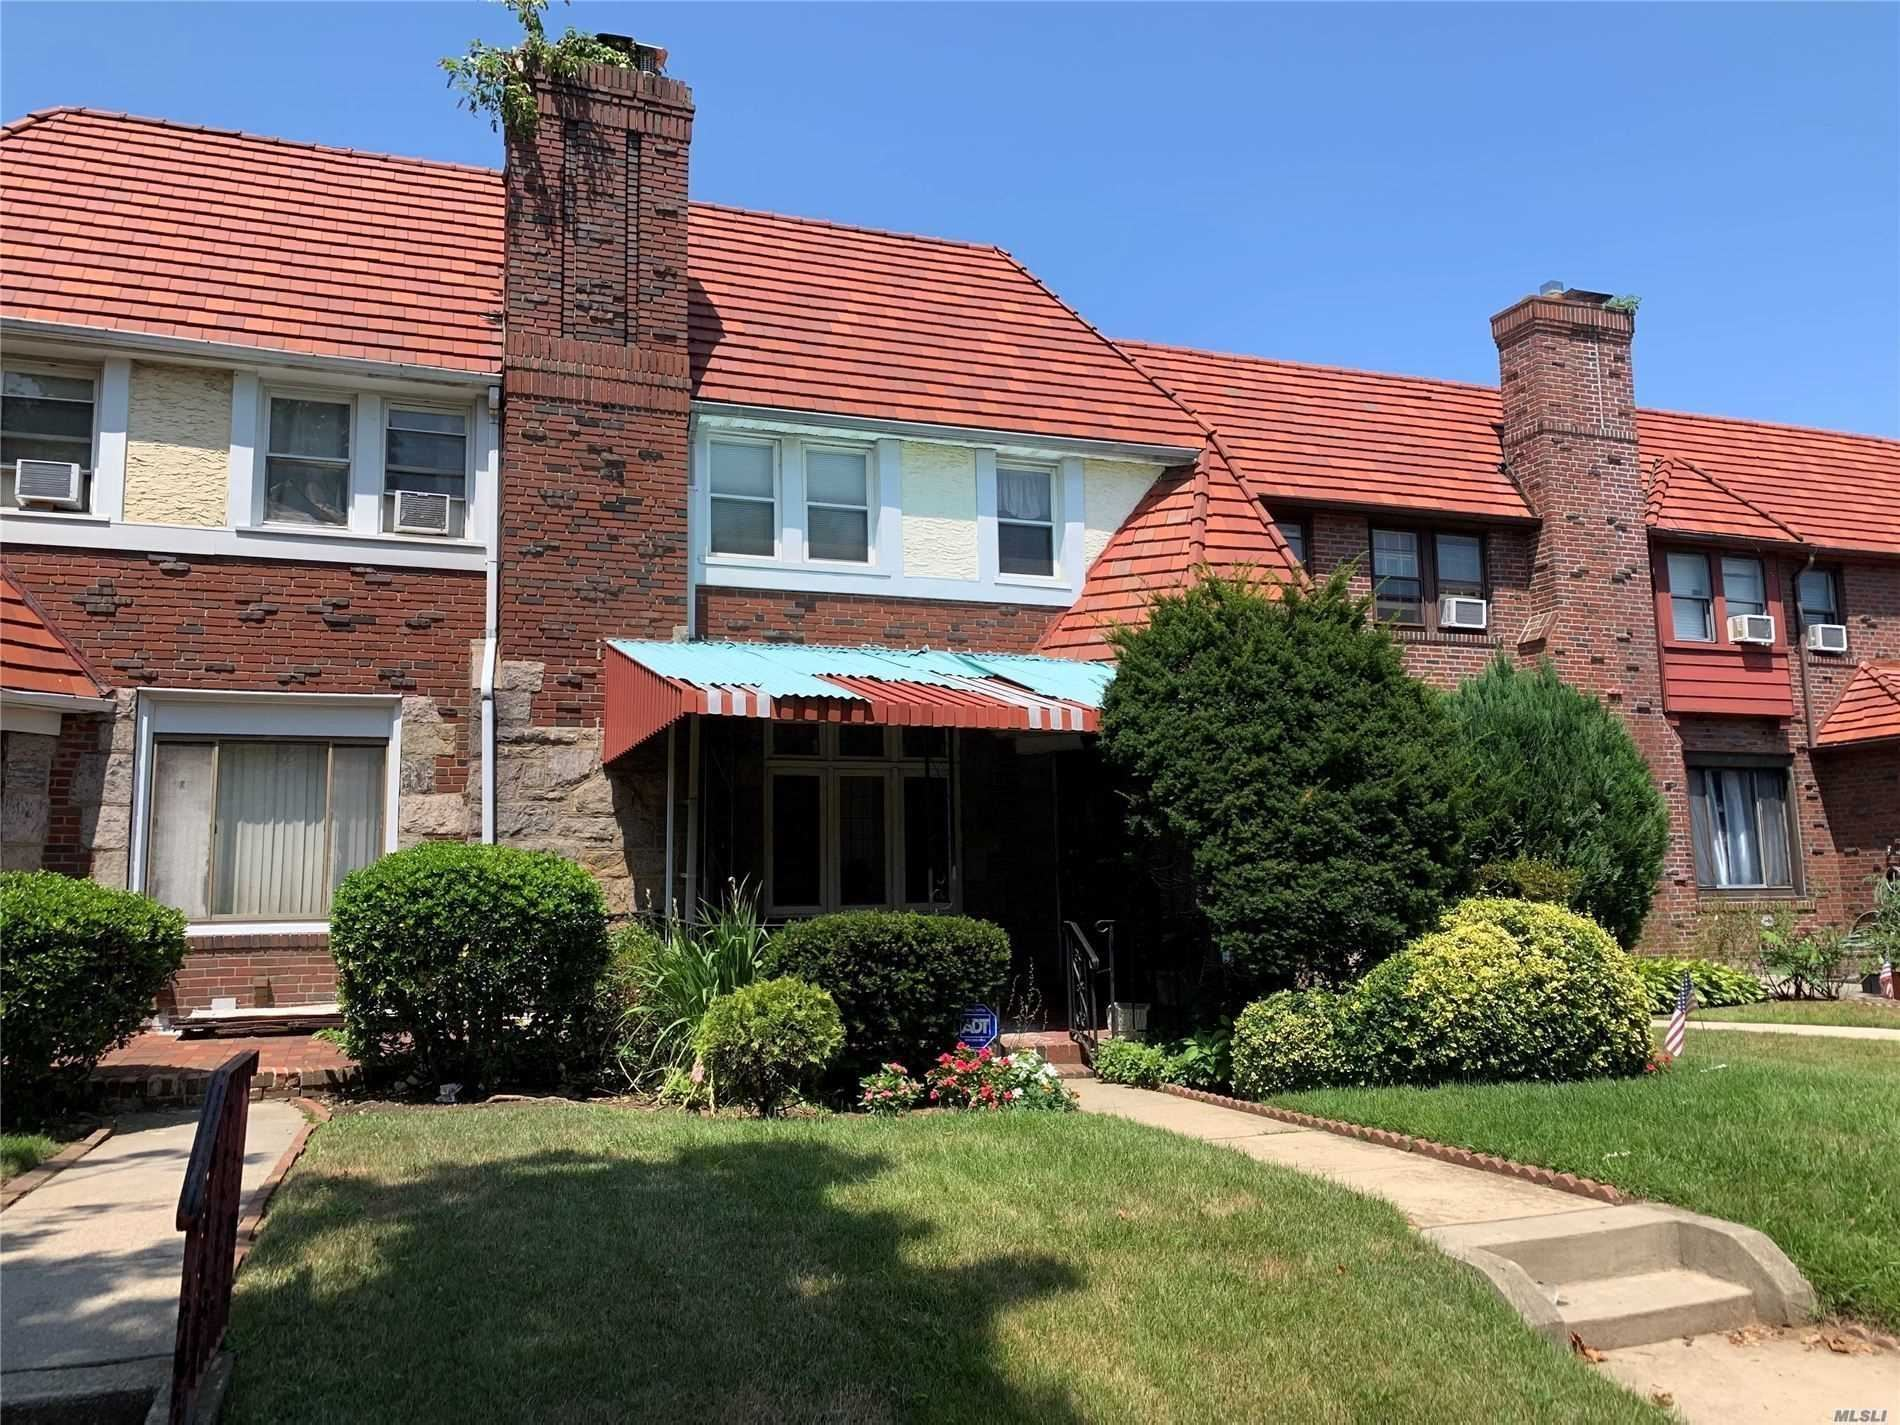 116-36 218th Street, Cambria Heights, NY 11411 - MLS#: 3214289